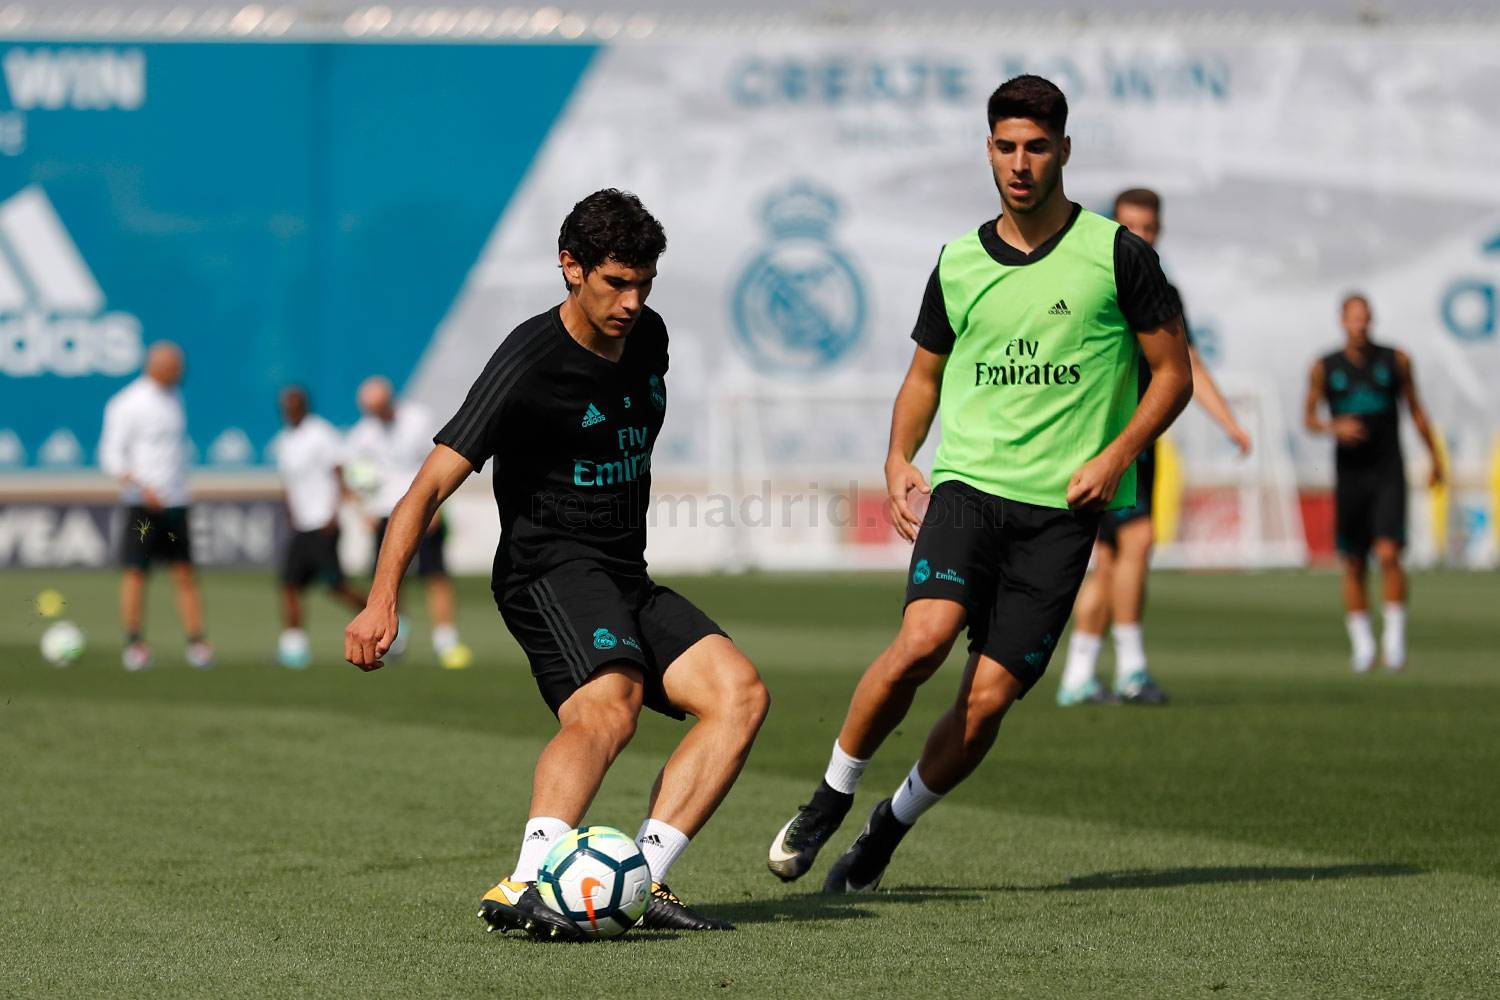 Real Madrid - Entrenamiento del Real Madrid - 08-09-2017